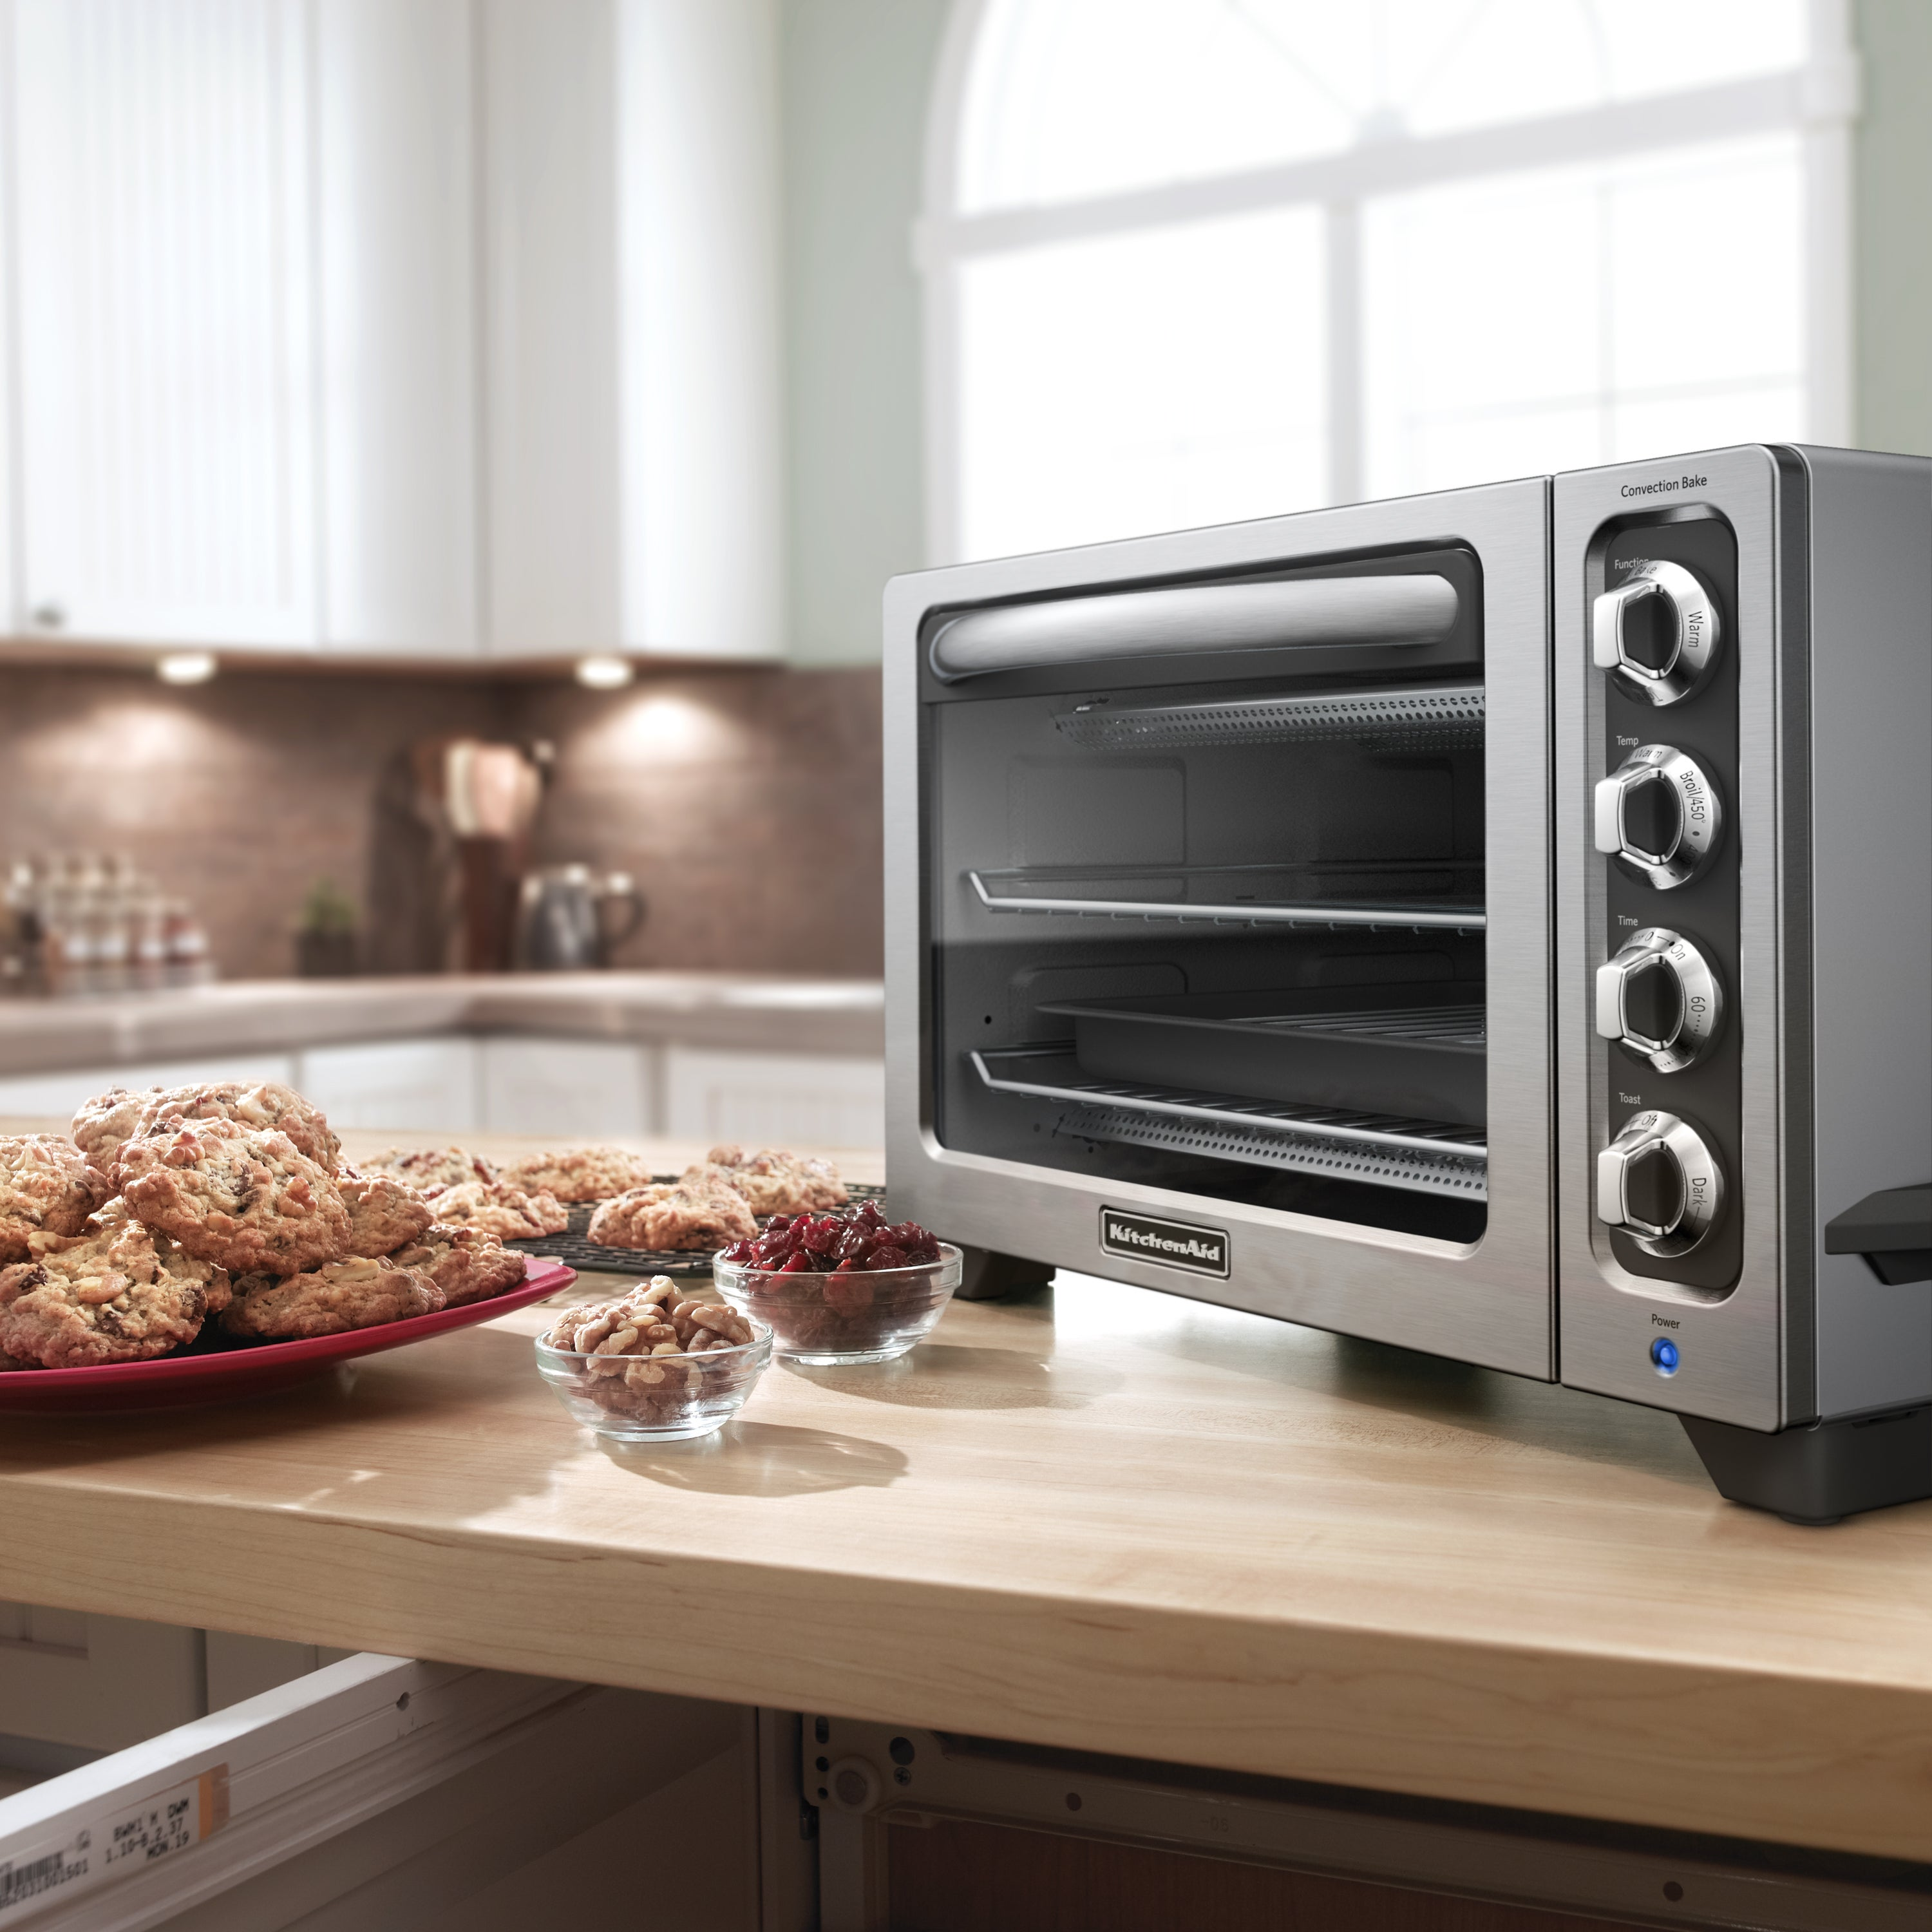 wolf usability gourmet the design cookery functionality reviewed oven countertops countertop and convection large